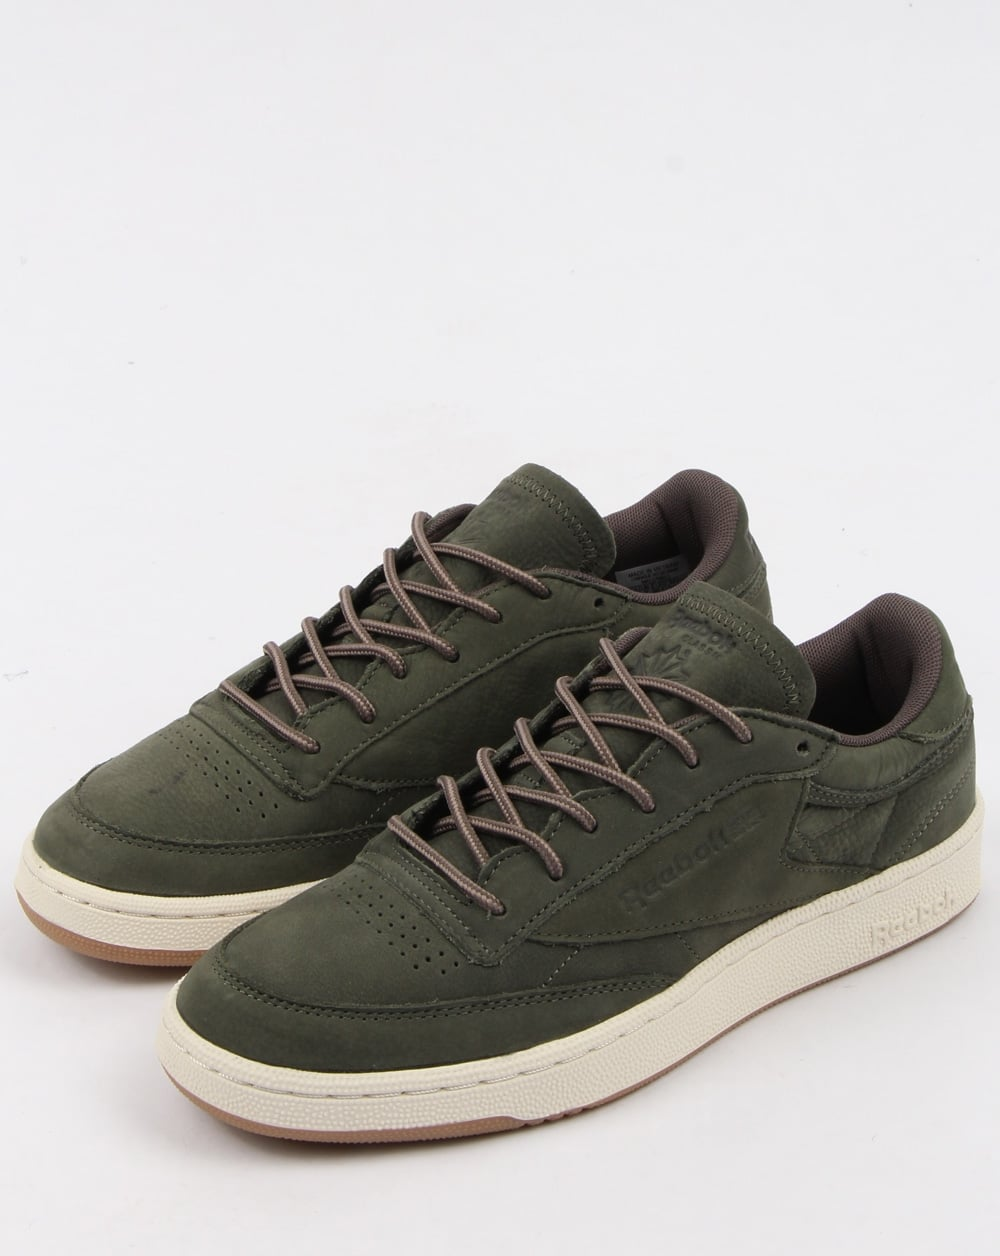 b8aaf708181 Reebok Club C 85 Wp Trainers Hunter Green Grey